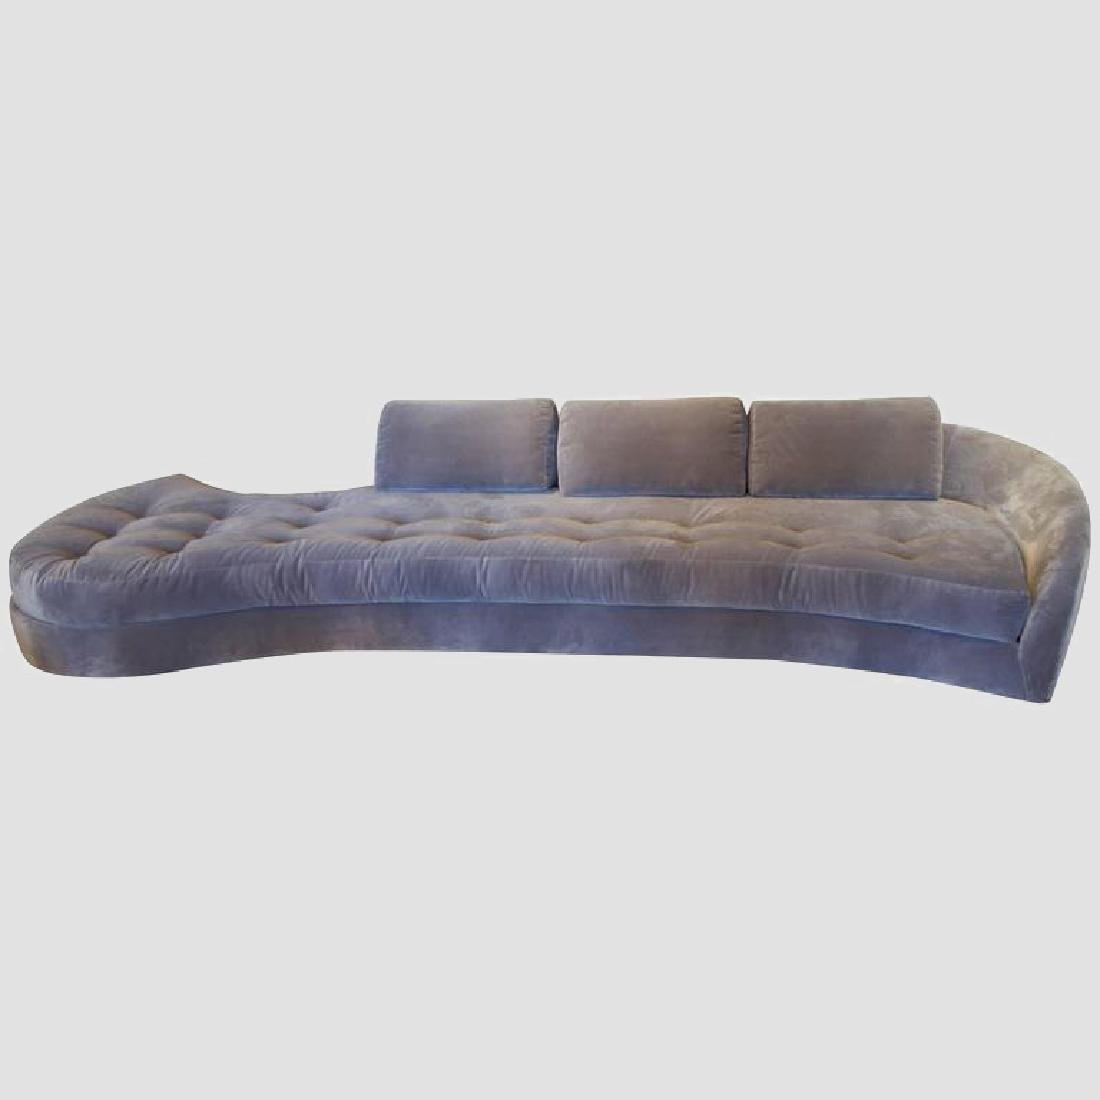 1950's Long Serpentine Sofa